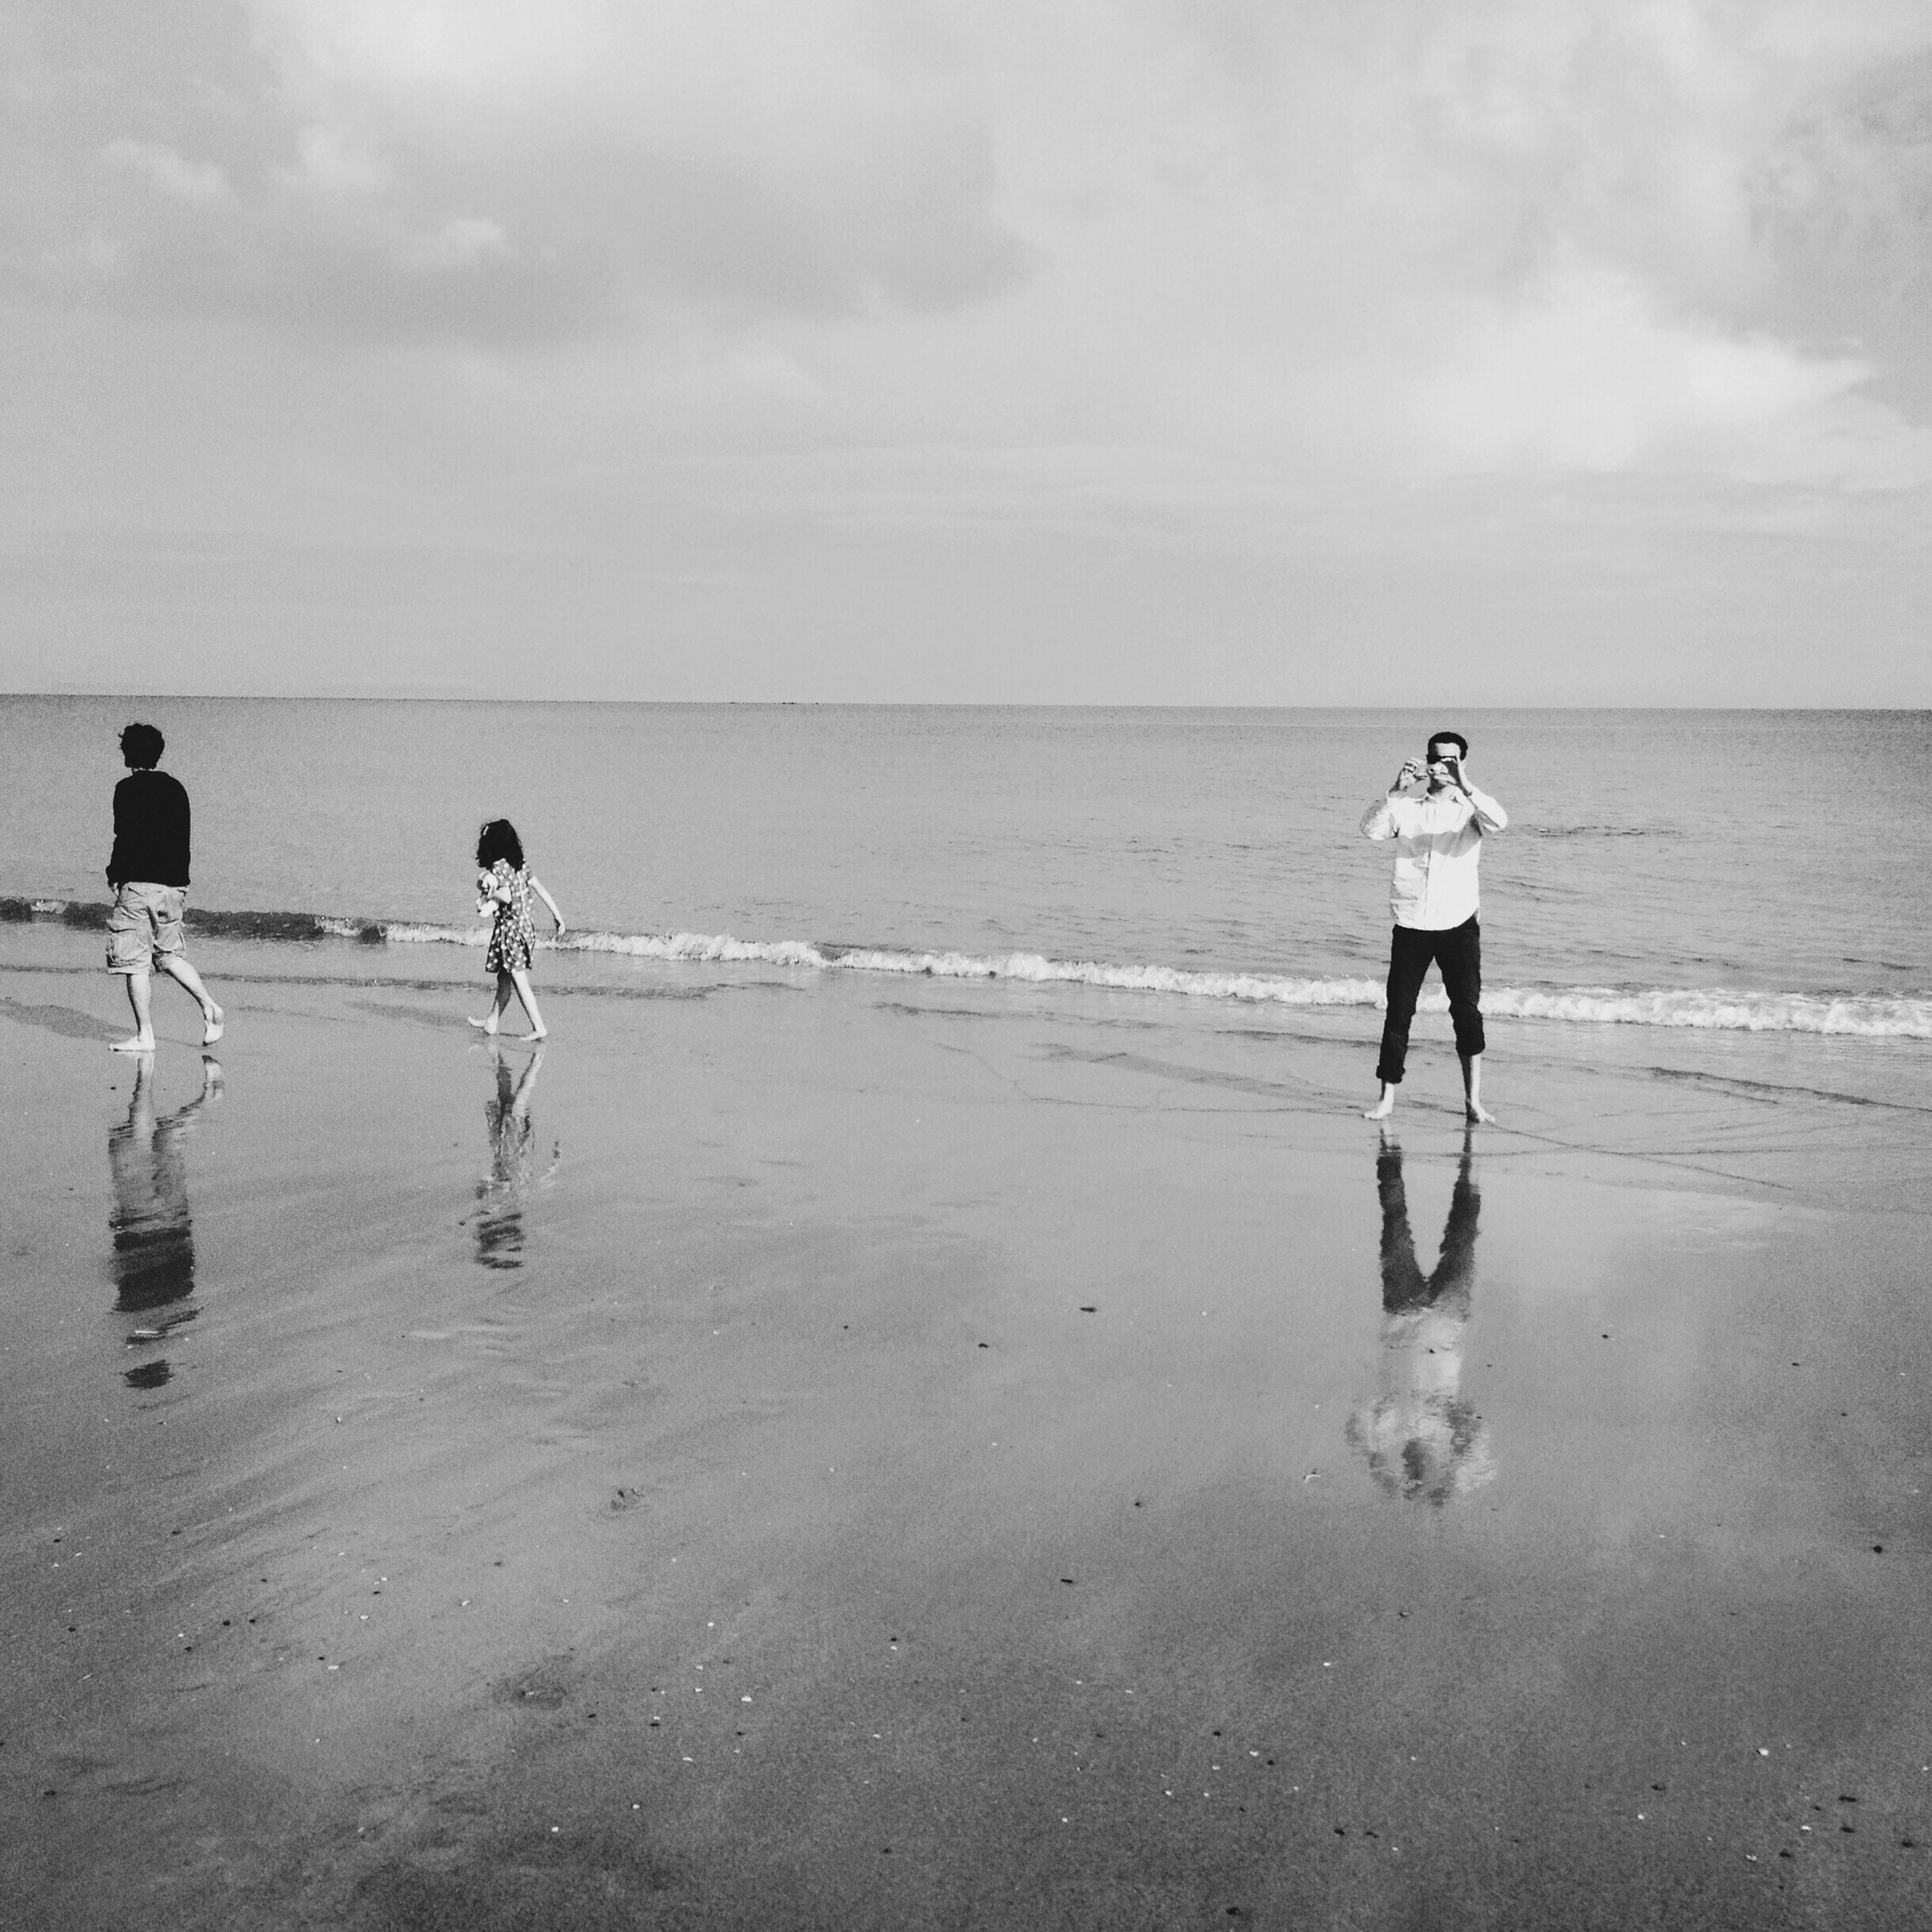 water, sea, beach, horizon over water, full length, leisure activity, lifestyles, shore, childhood, sky, boys, girls, elementary age, sand, vacations, enjoyment, casual clothing, playing, fun